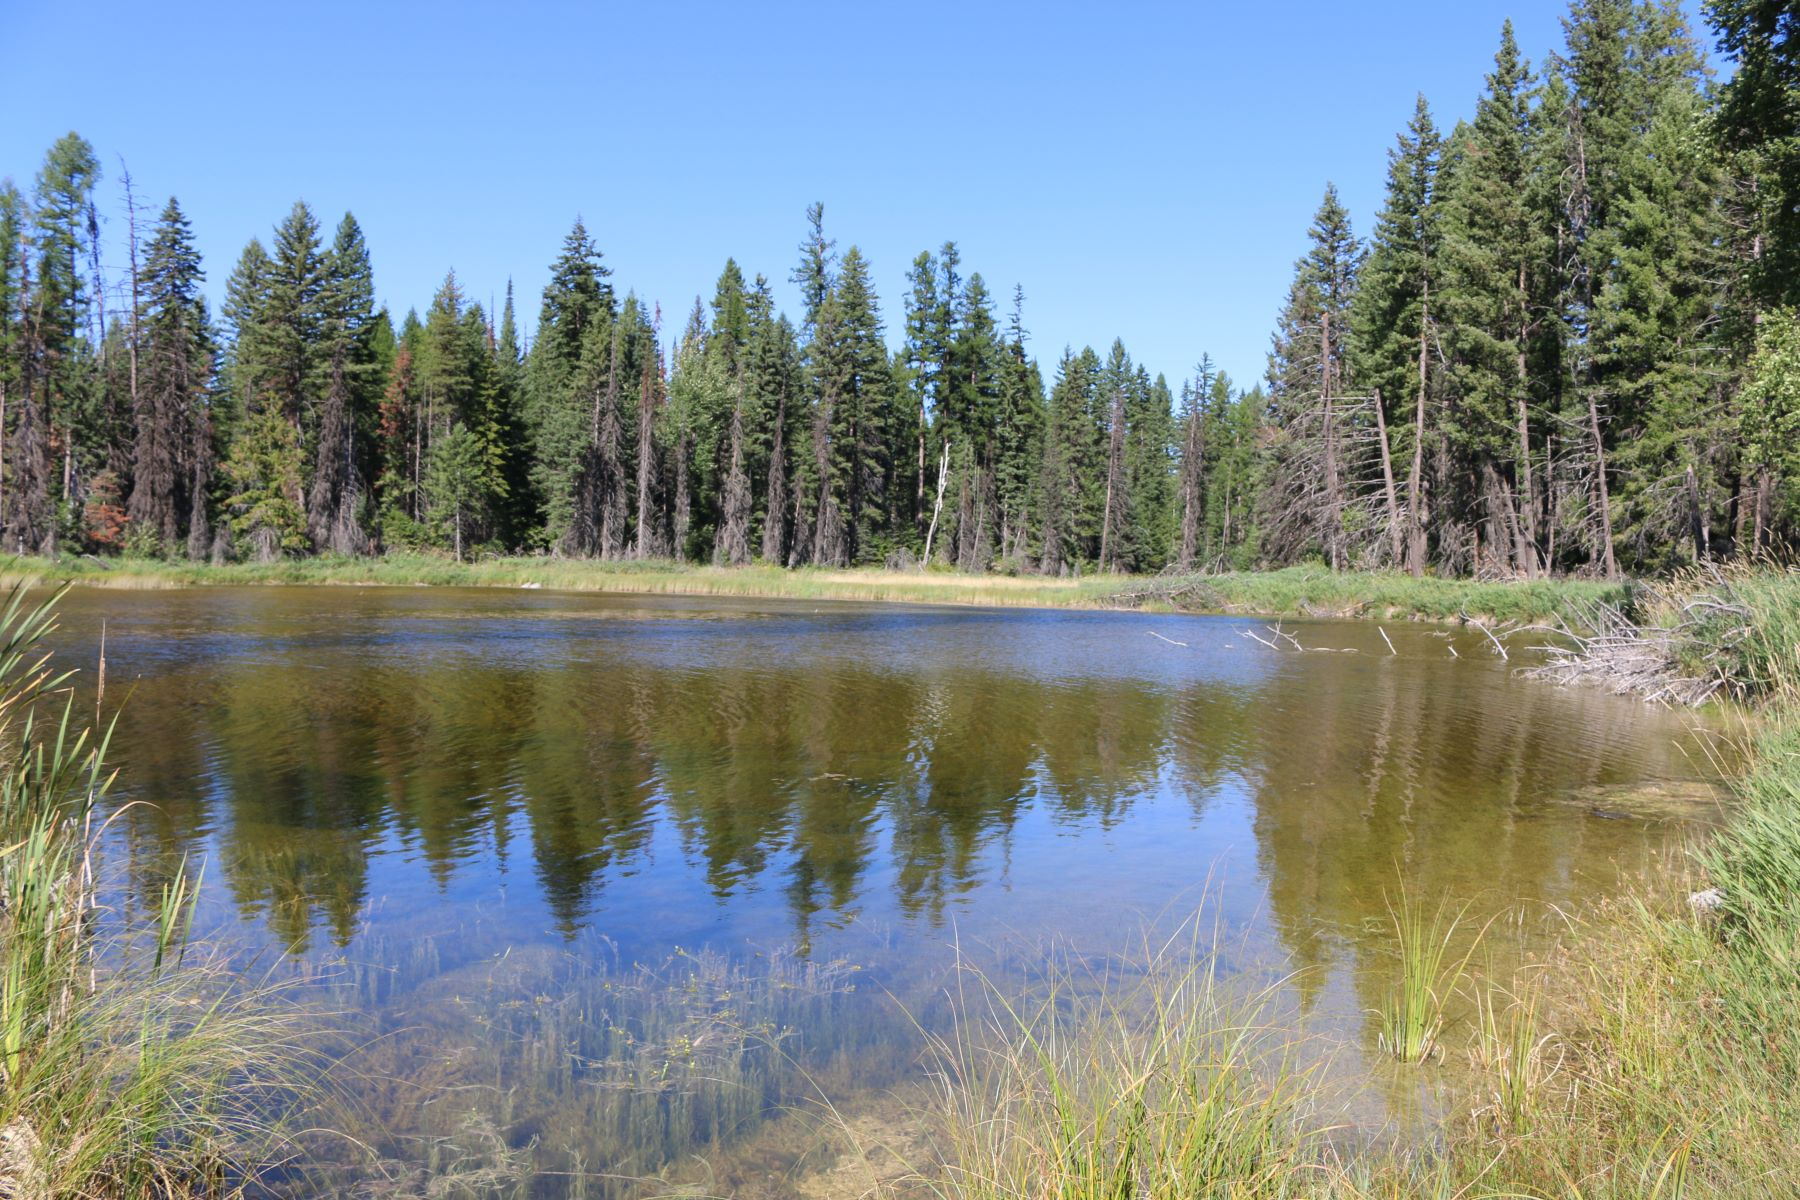 Land for Sale at NHN Cilly Creek, Swan Lake, MT 59911 00000 Cilly Creek Road Fs Rd #9523 , Fs Rd #9523 Swan Lake, Montana 59911 United States